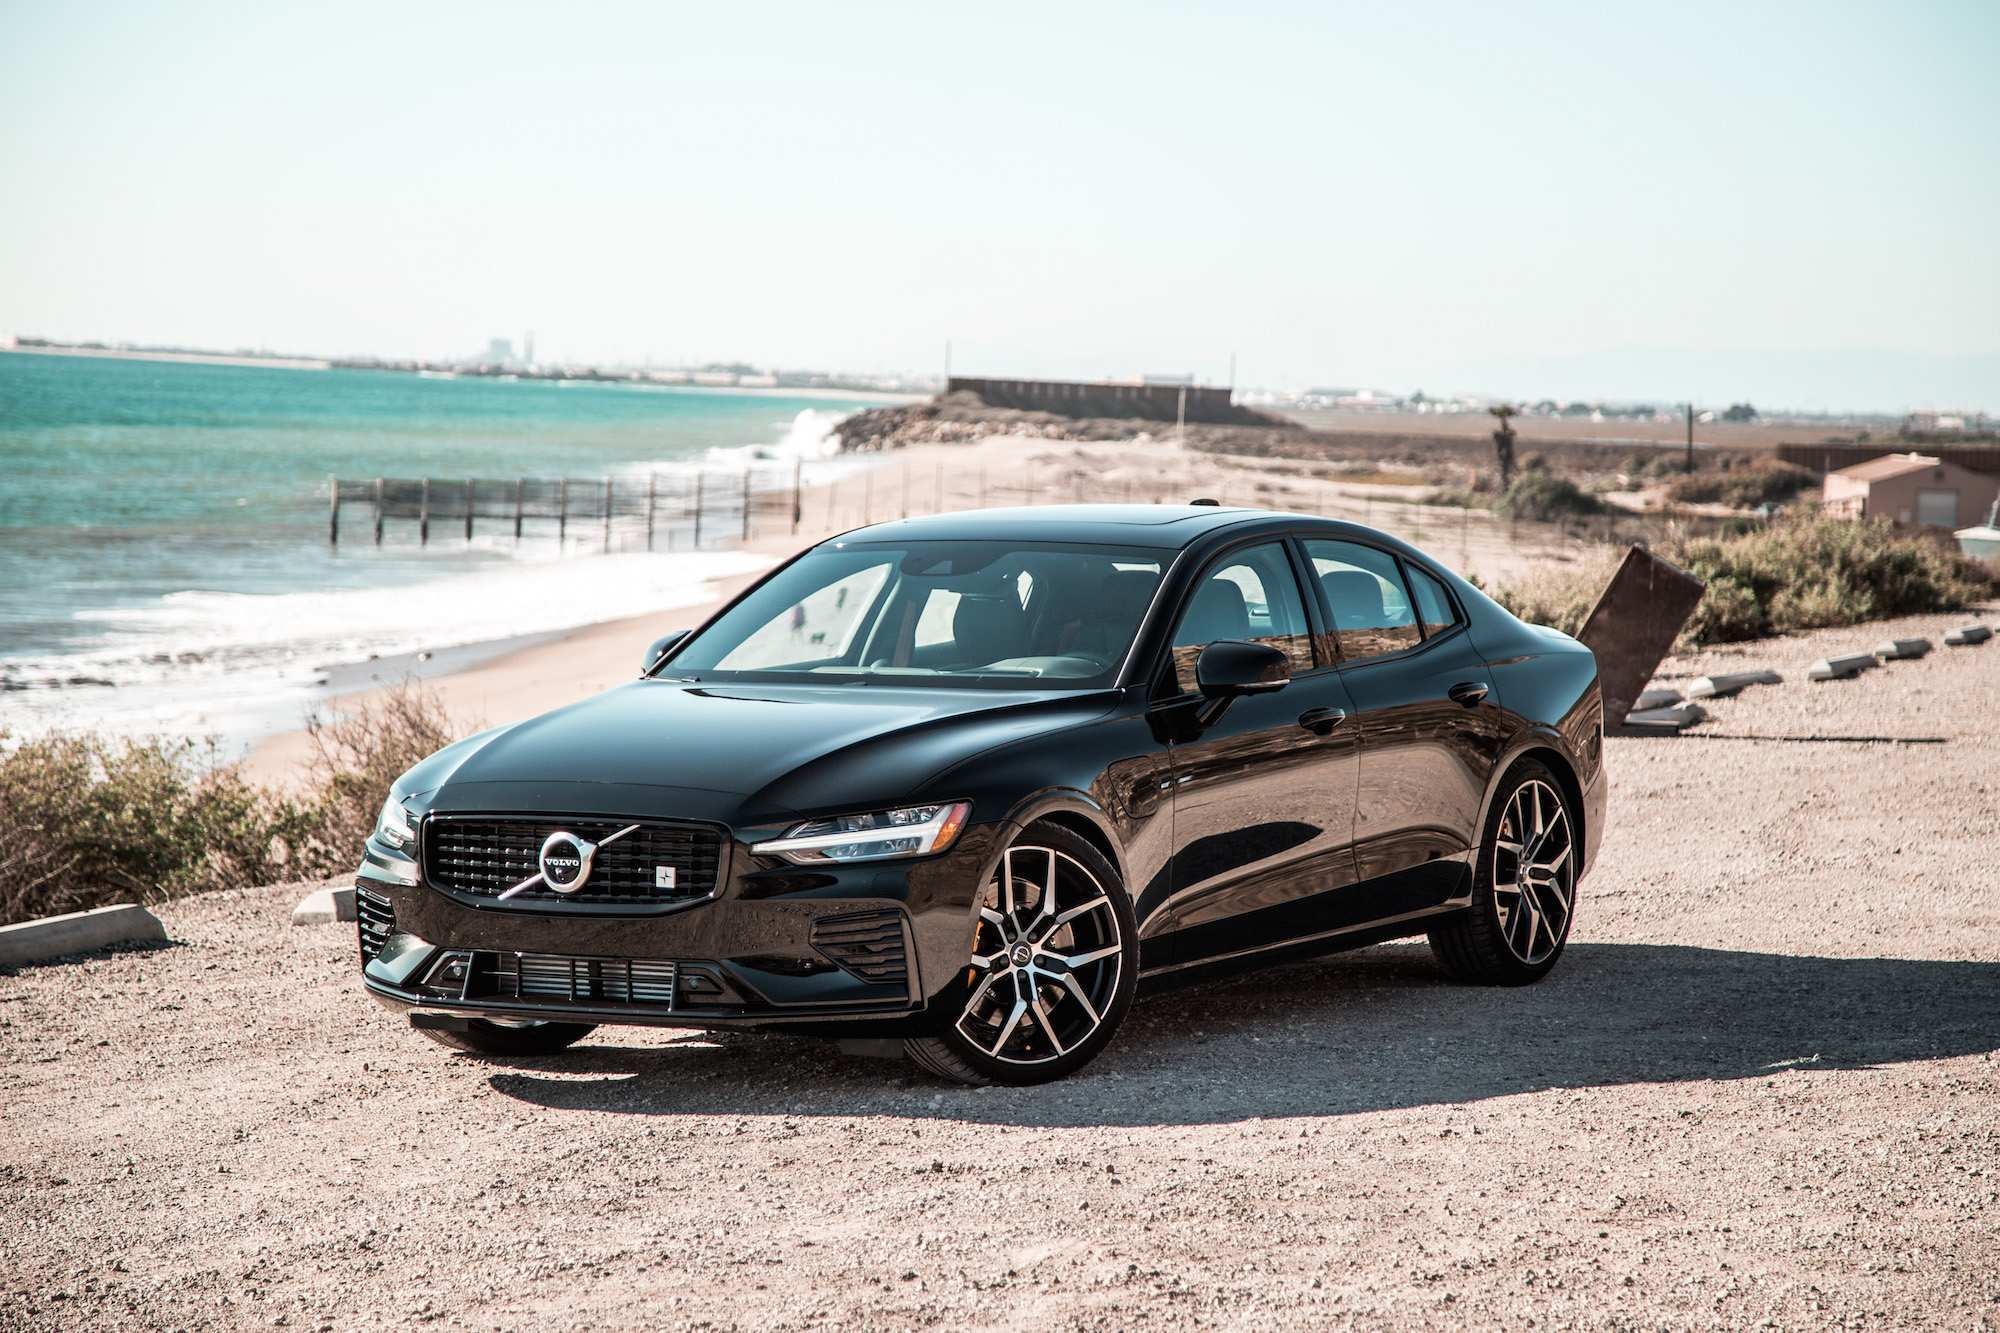 49 The Volvo S60 Polestar 2020 Price